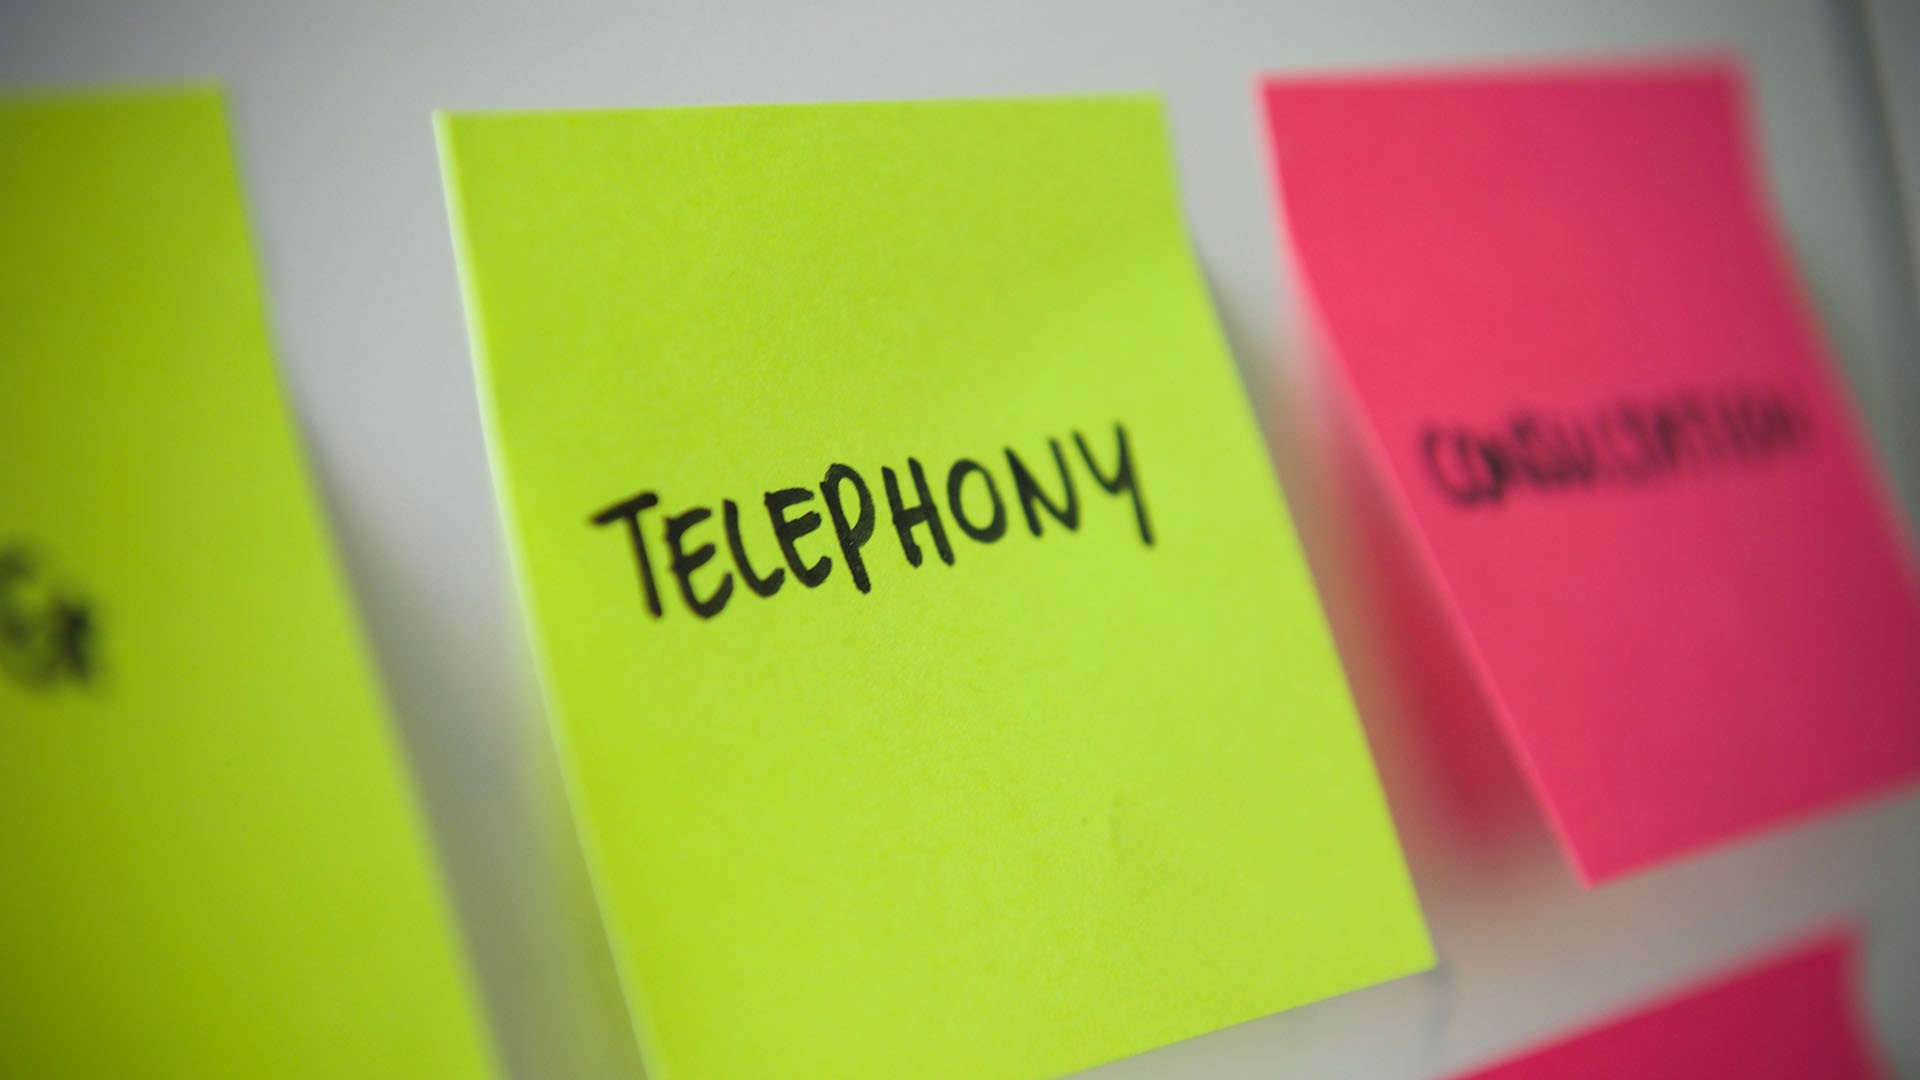 Telephony solutions from Green Duck